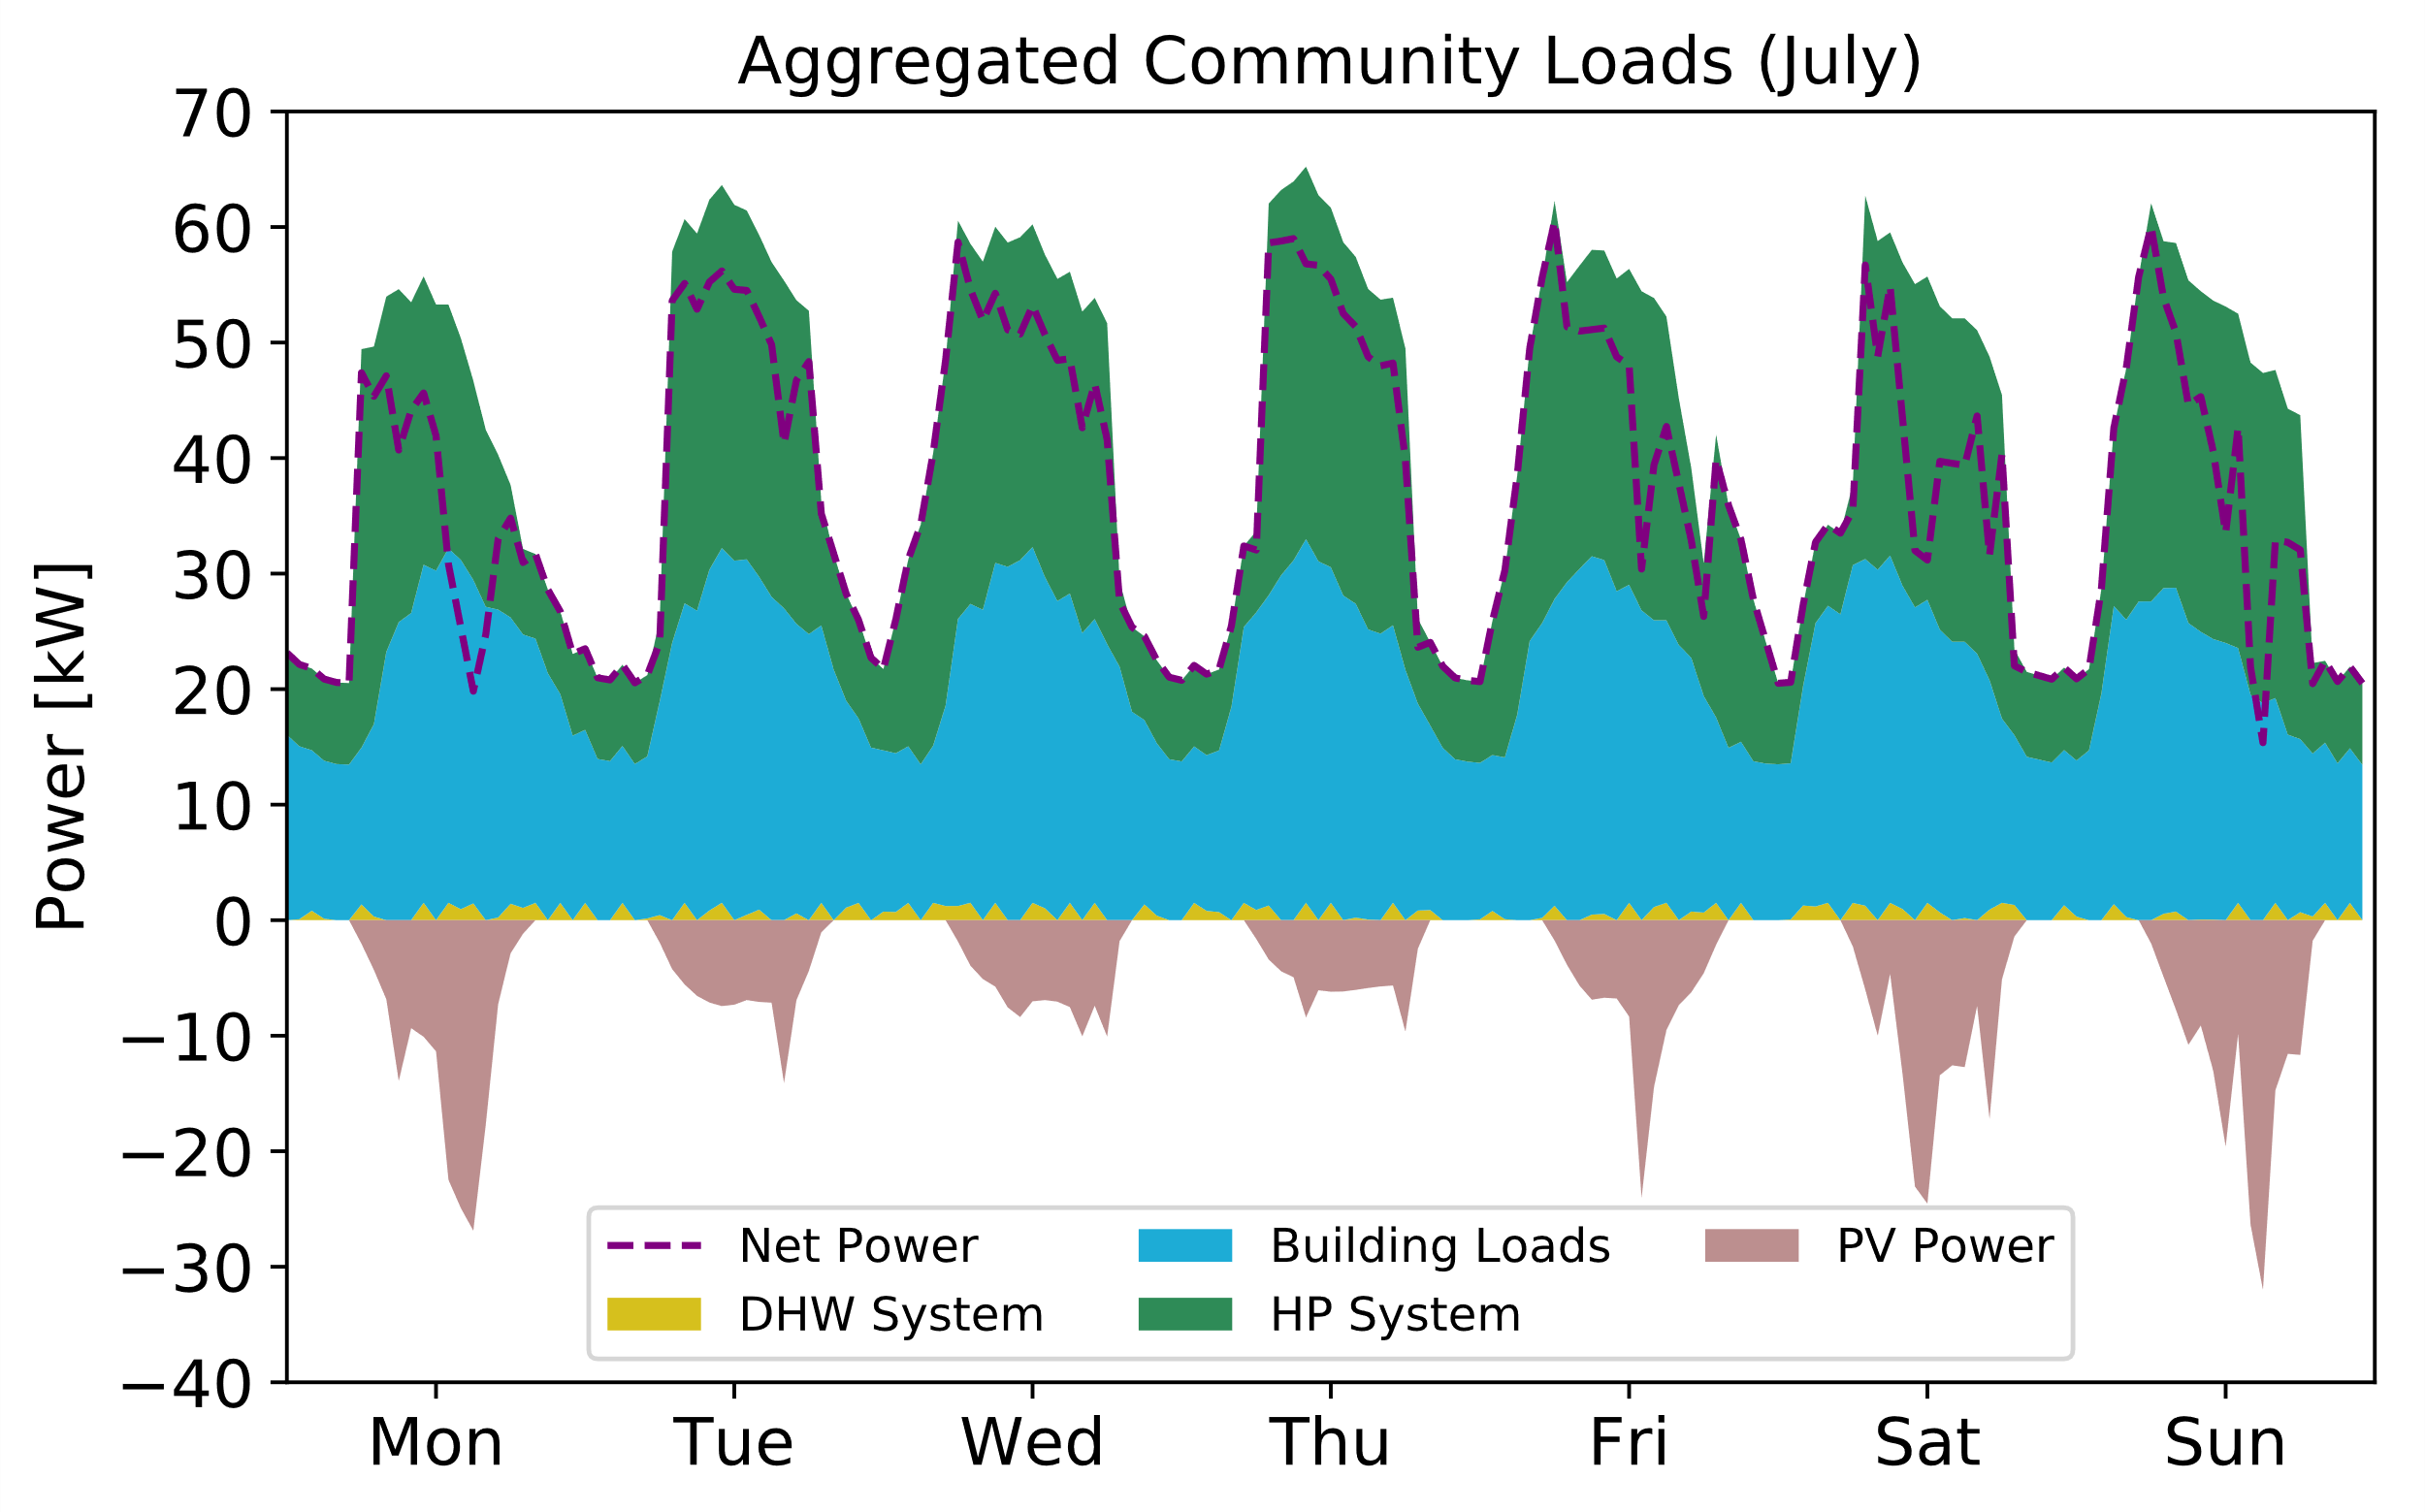 Simulated community aggregated load in July